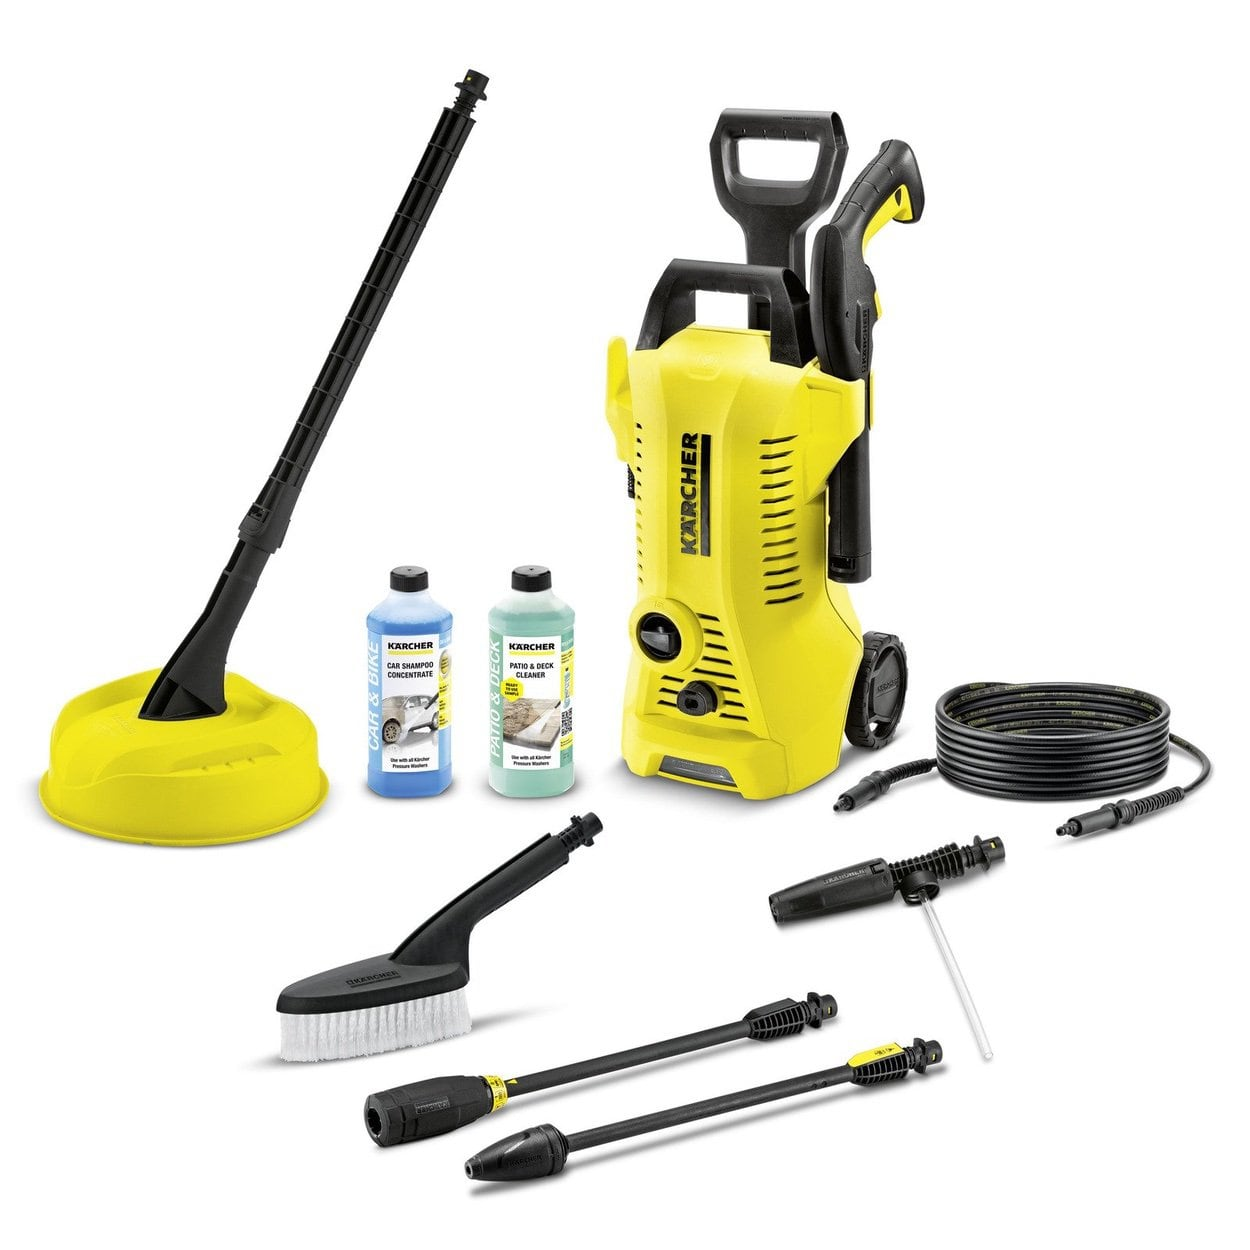 Kärcher K2 Premium Car & Home High Pressure Cleaner - COMPLETE SET